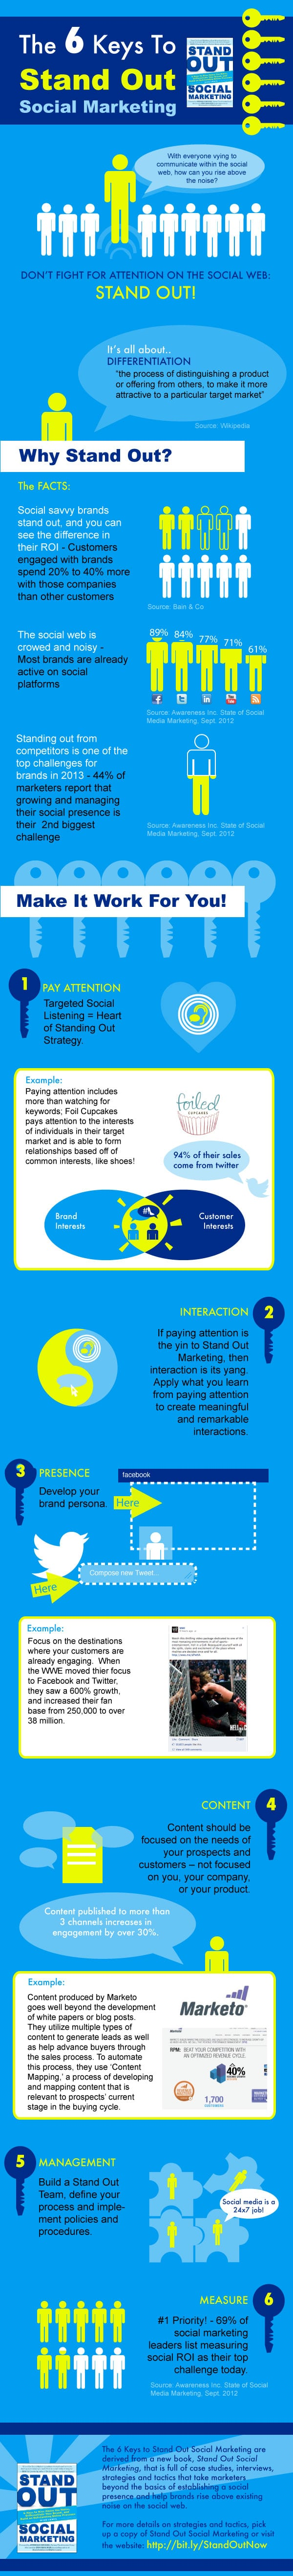 Getting Noticed: 6 Ways To Gain Social Media Attention [Infographic]